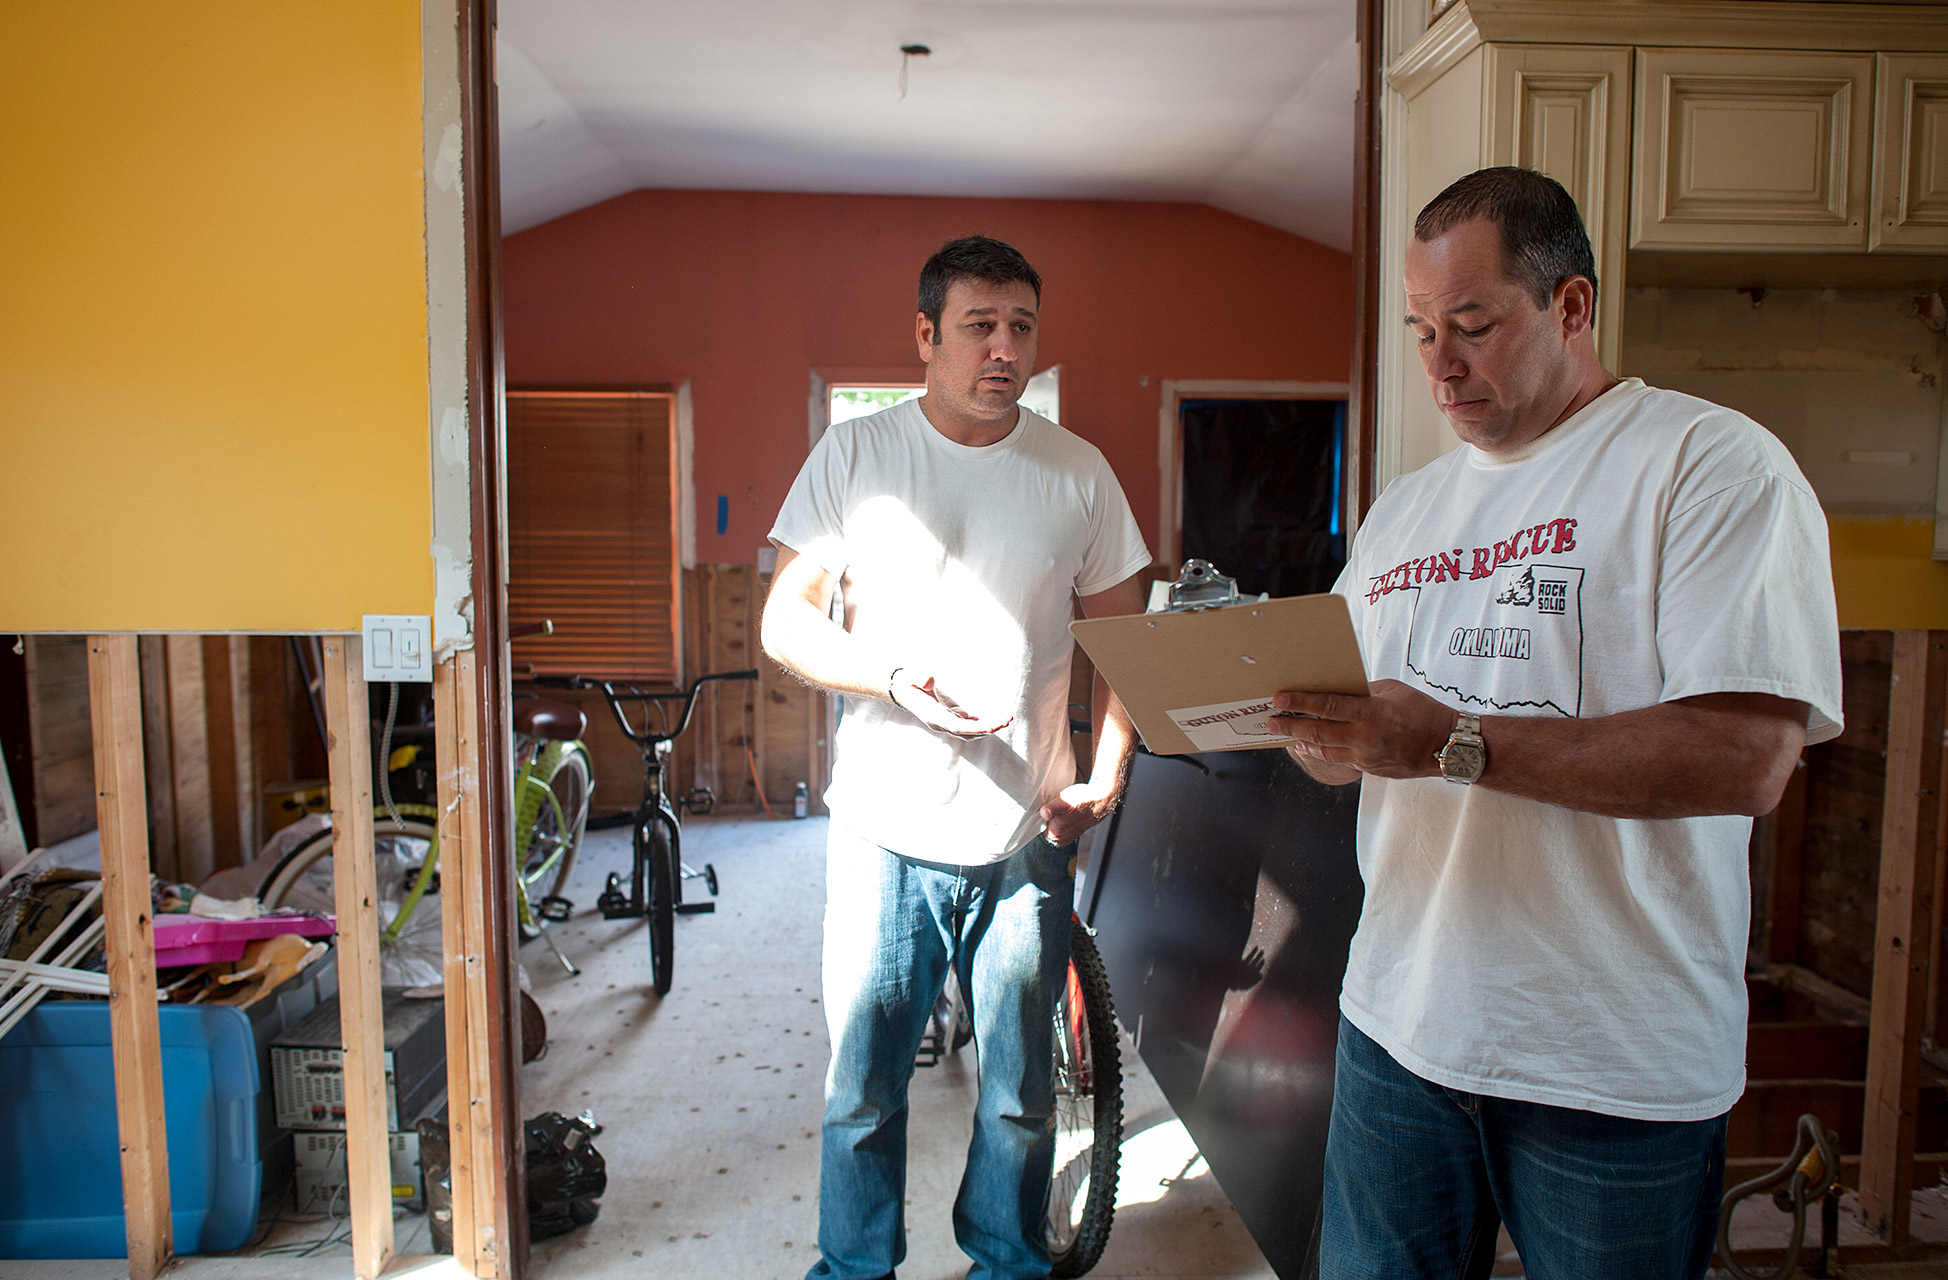 Staten Island: One year after Sandy